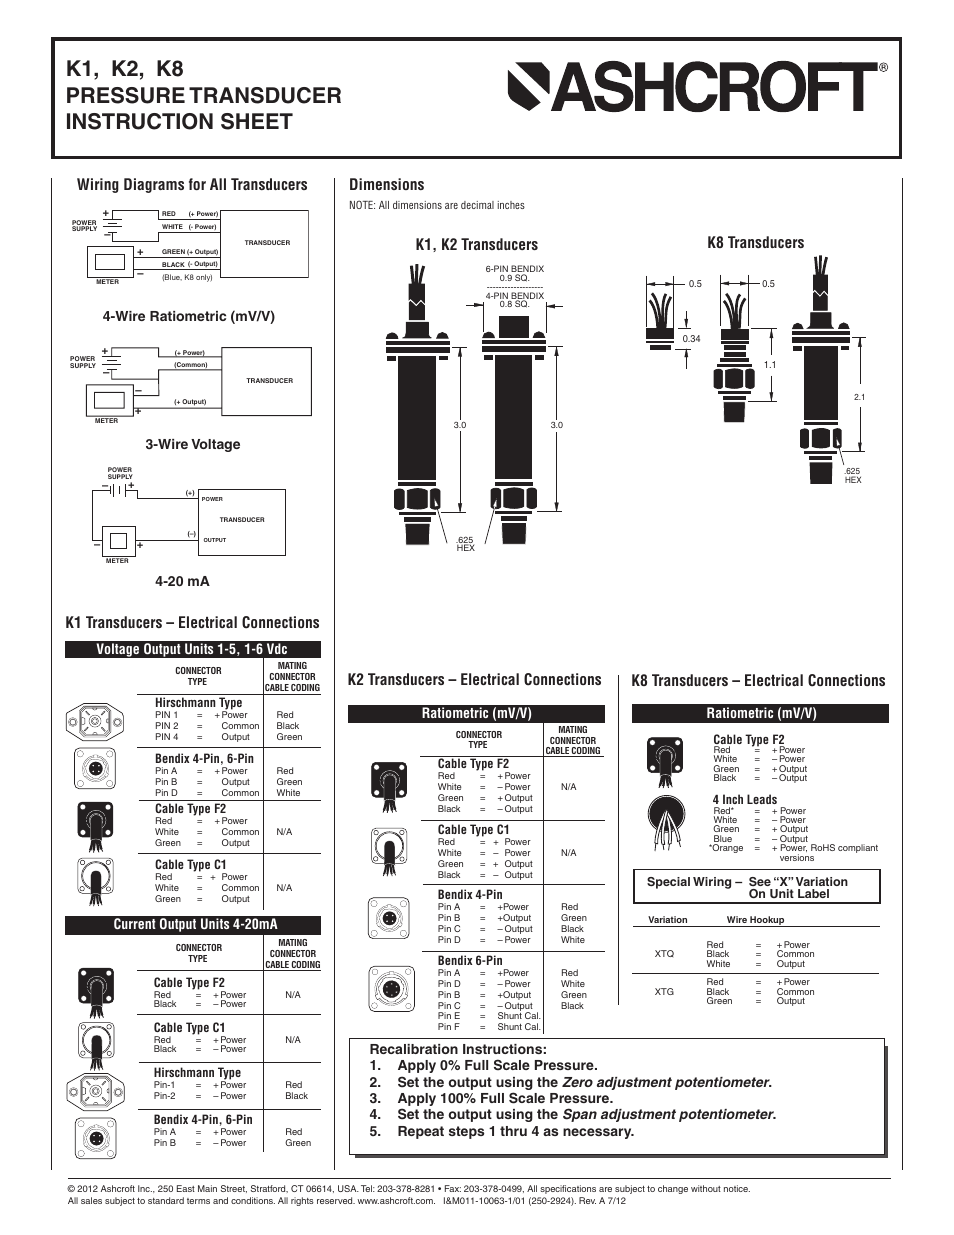 220 4 wire 3 phase wiring diagram 4 wire pressure transducer wiring diagram k1, k2, k8 pressure transducer instruction sheet, k8 ...